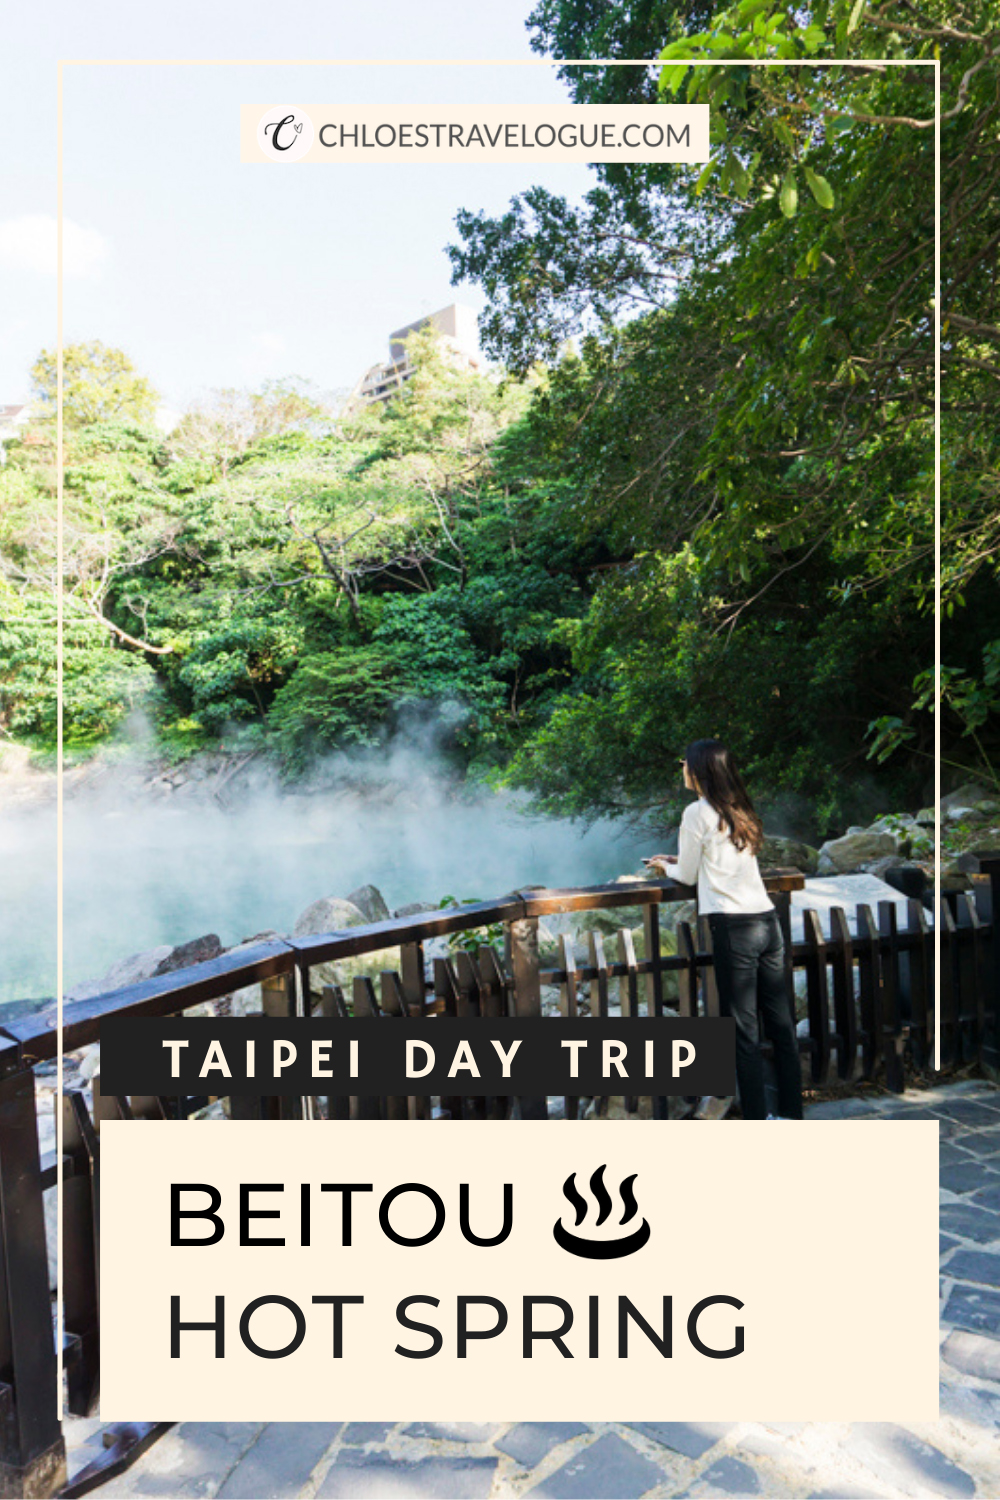 Beitou Hot Spring Guide: Best Hot Spring in Beitou (Private vs Public Bathhouses) & Other Things to Do | #BeitouHotSprings #BeitouThermalValley #BeitouLibrary #BeitouTaiwan #TravelAsia